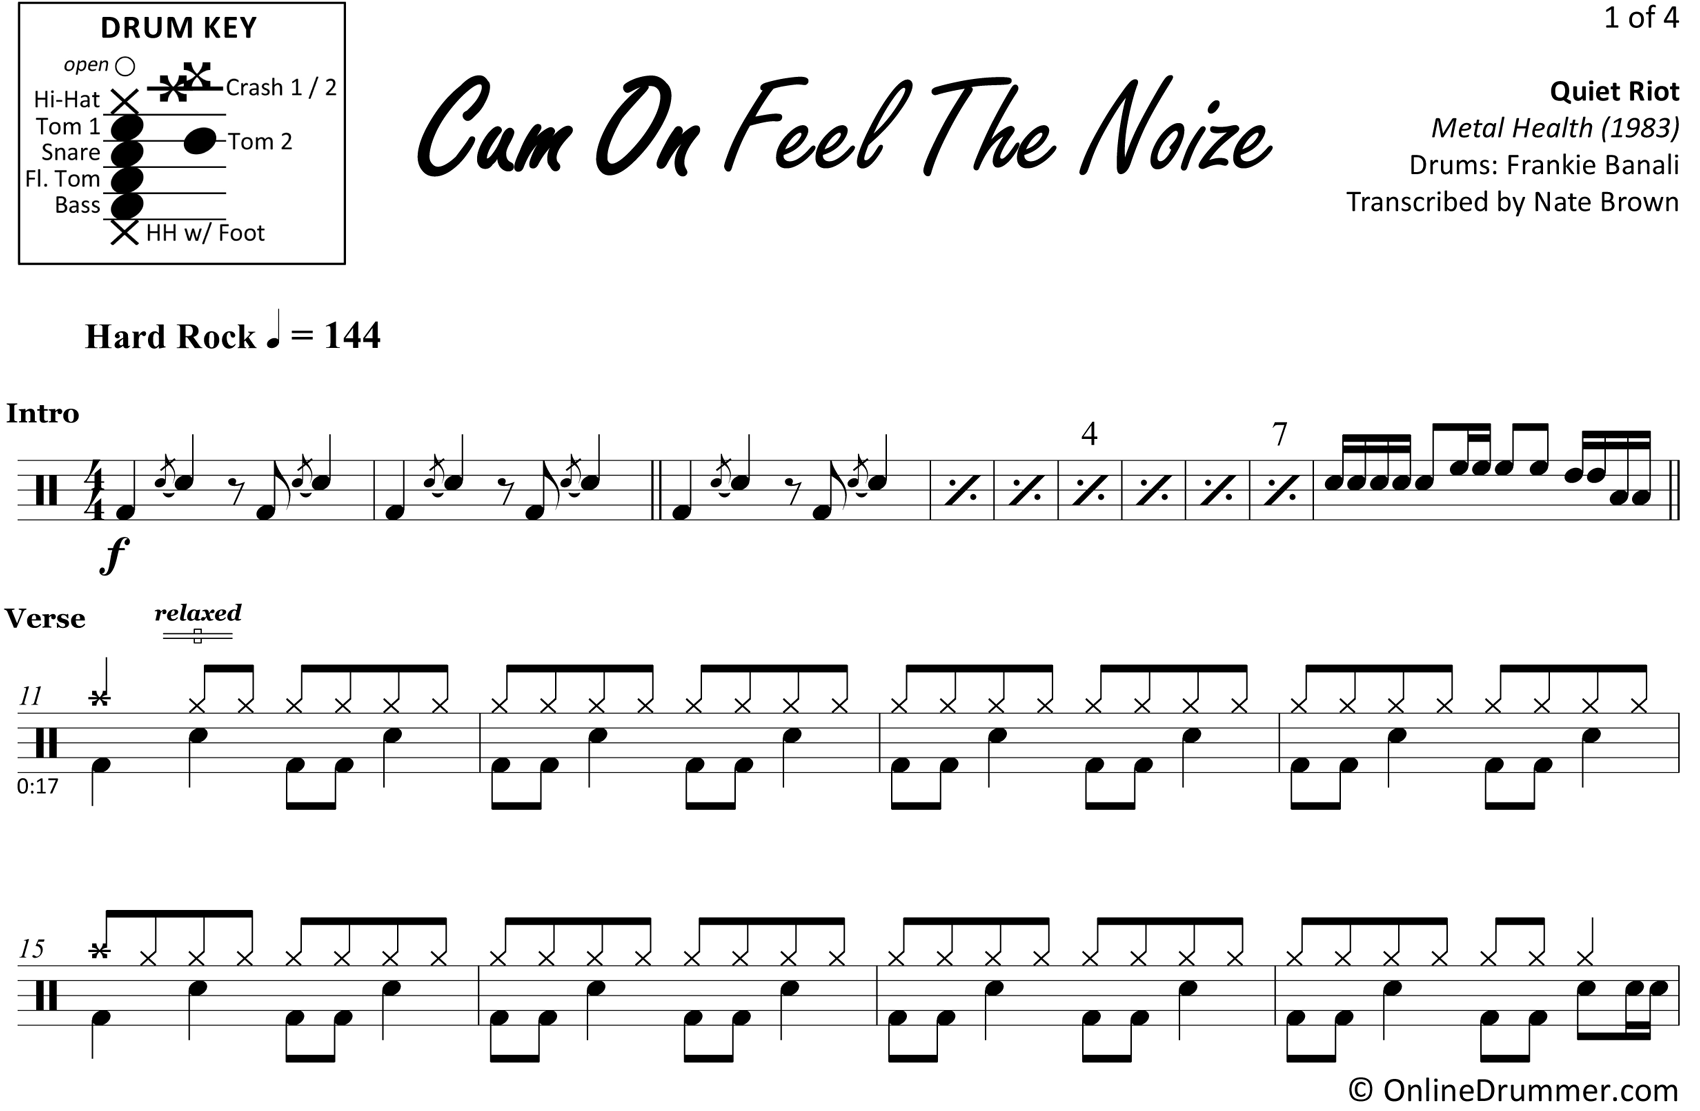 Cum On Feel The Noize - Quiet Riot - Drum Sheet Music